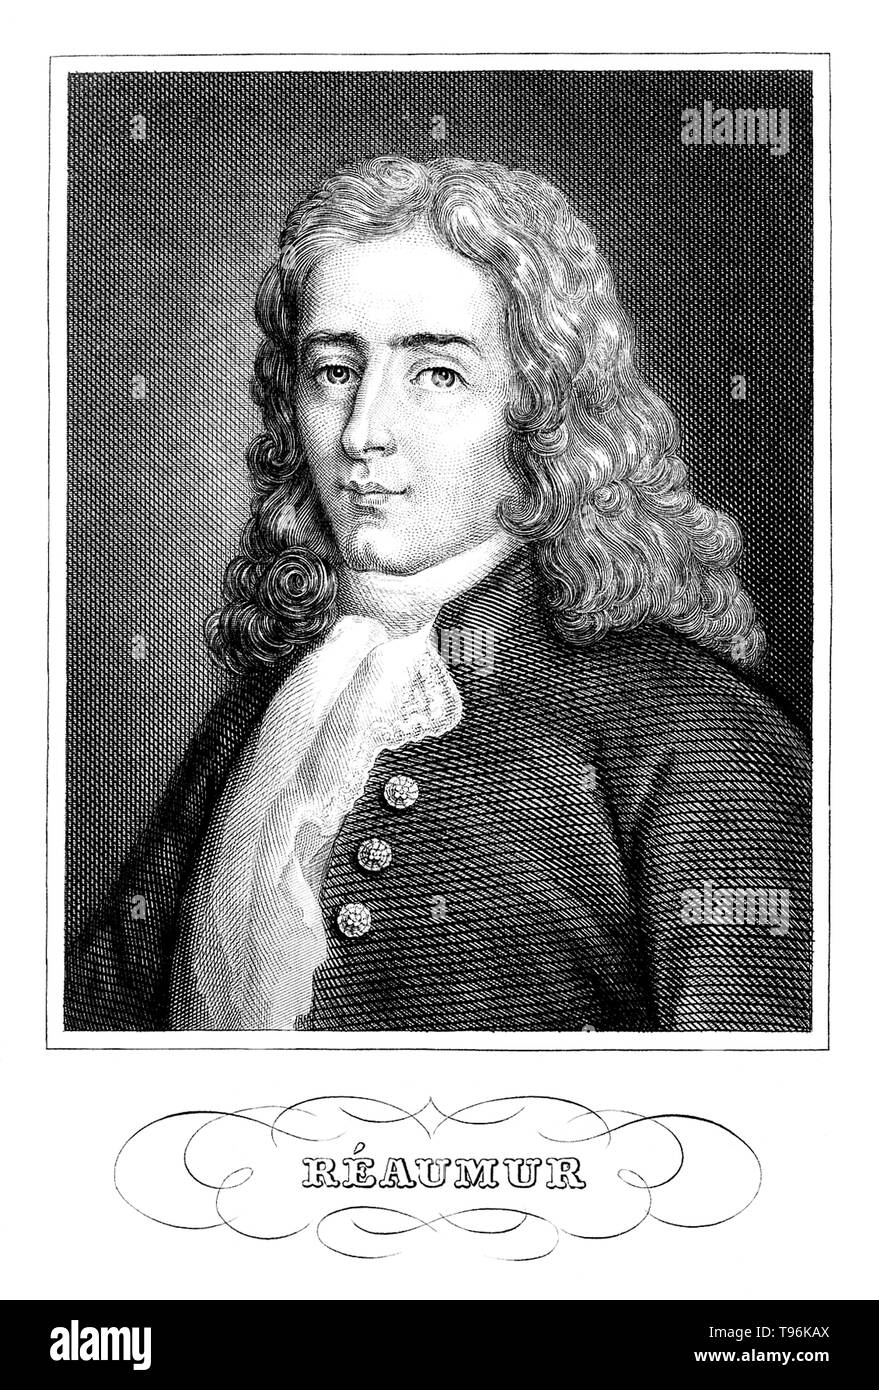 René Antoine Ferchault de Réaumur (February 28, 1683 - October 17, 1757) was a French scientist who contributed to many different fields, especially the study of insects. In 1699 he studied civil law and mathematics. In 1703 he went to Paris, where he continued the study of mathematics and physics, and in 1708 was elected, at the age of 24, a member of the Académie des Sciences. In 1731 he became interested in meteorology, and invented the thermometer scale which bears his name: the Réaumur. - Stock Image